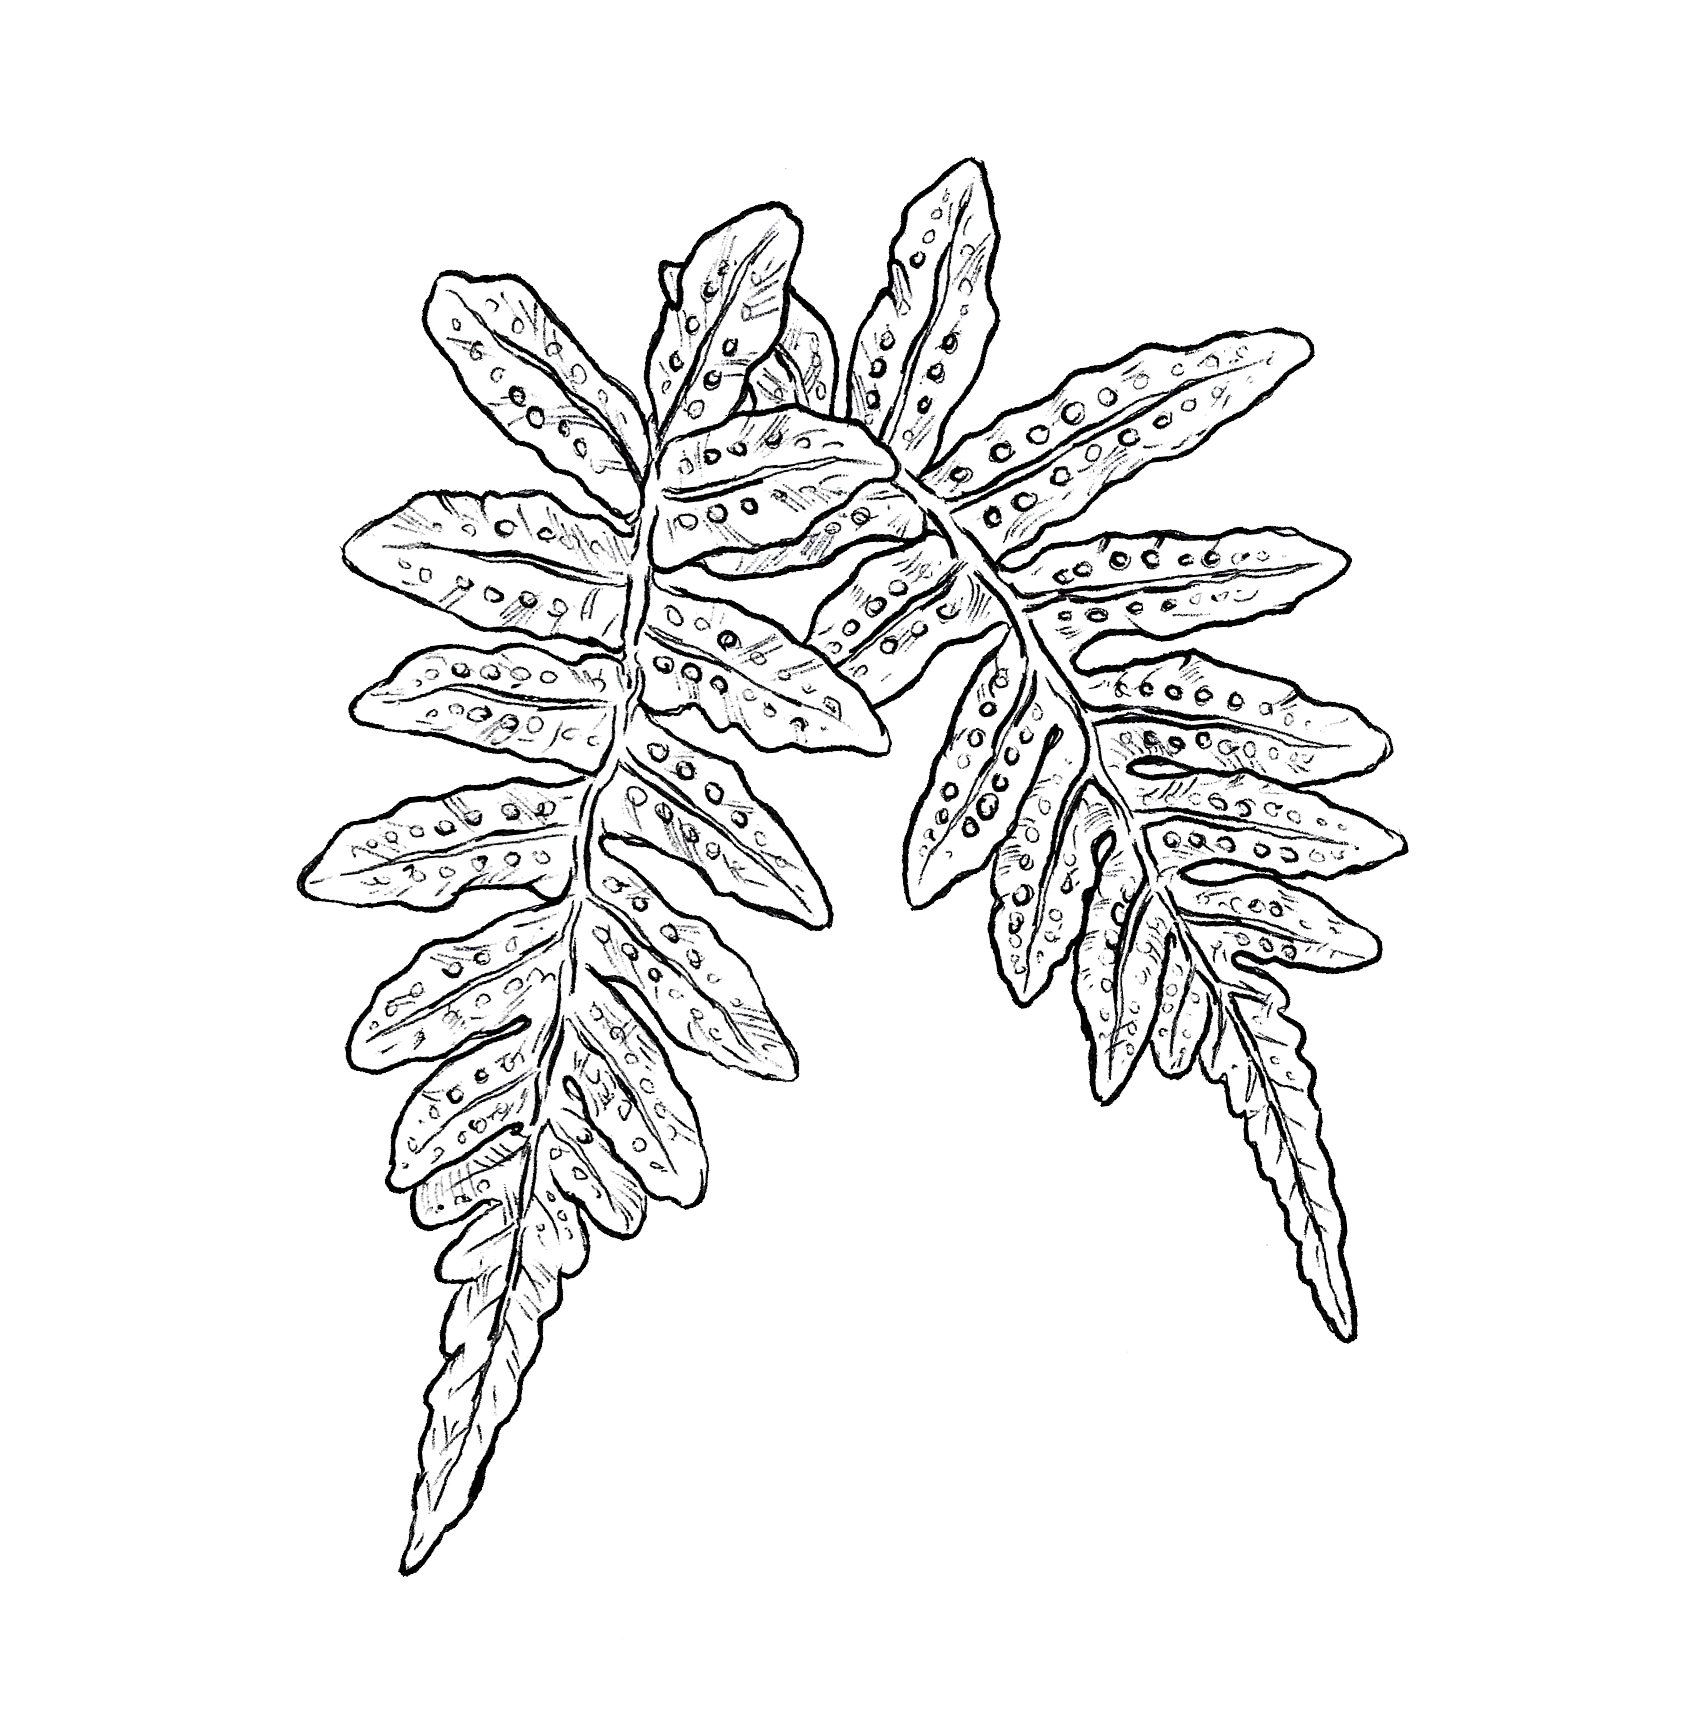 "- *Booked Western Polypody FernLocations; Up to youMinimum size: 4""Rate: HourlyNotes: Could be colored, shaded or left as it is."